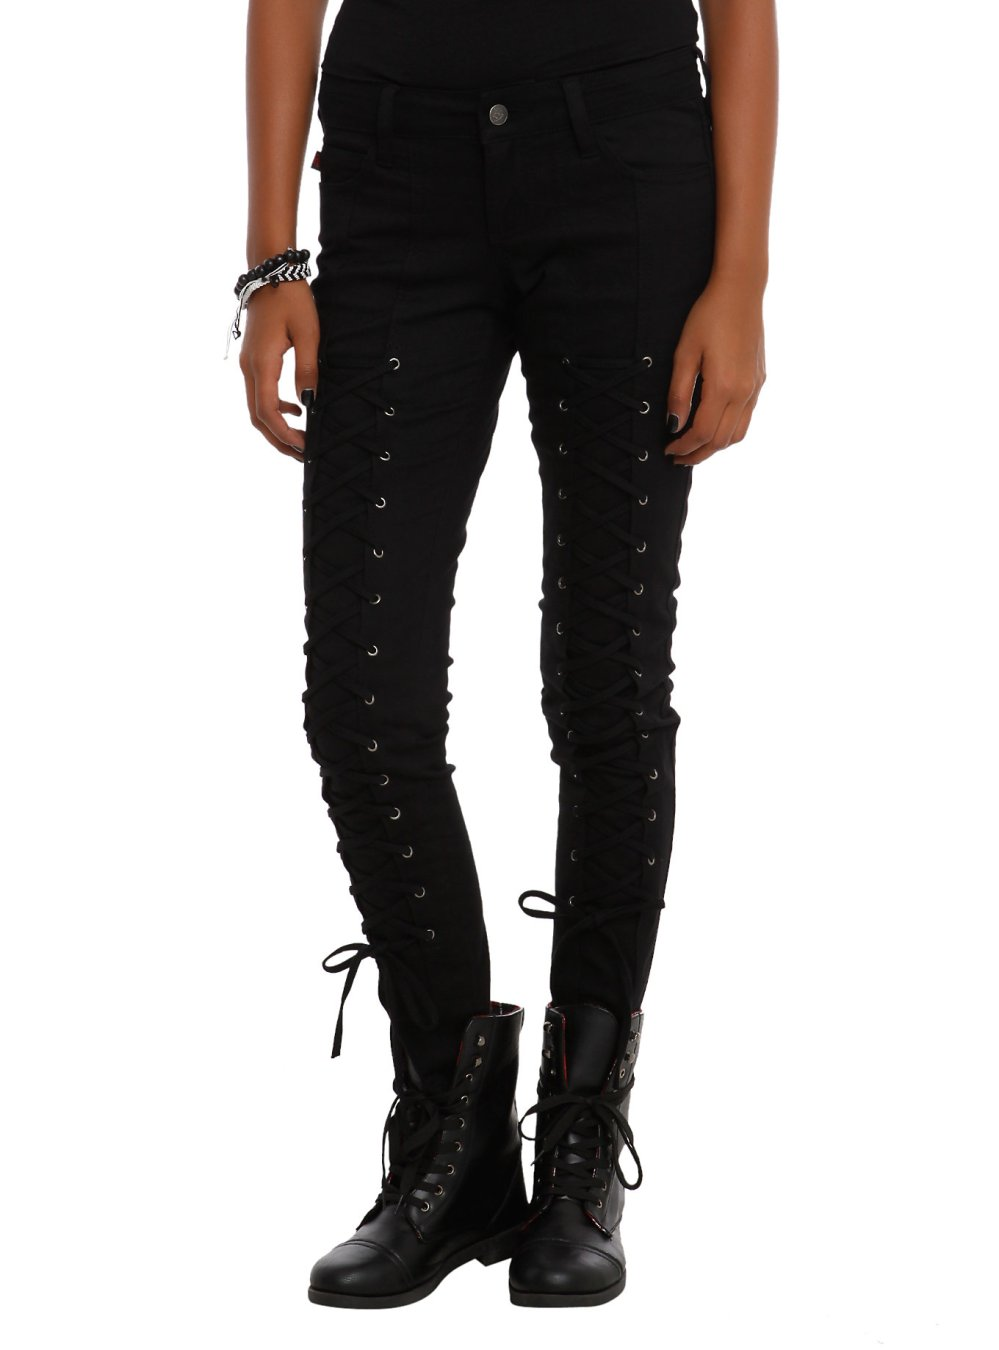 Royal Bones By Tripp Black Lace-Up Skinny Jeans, $27.19